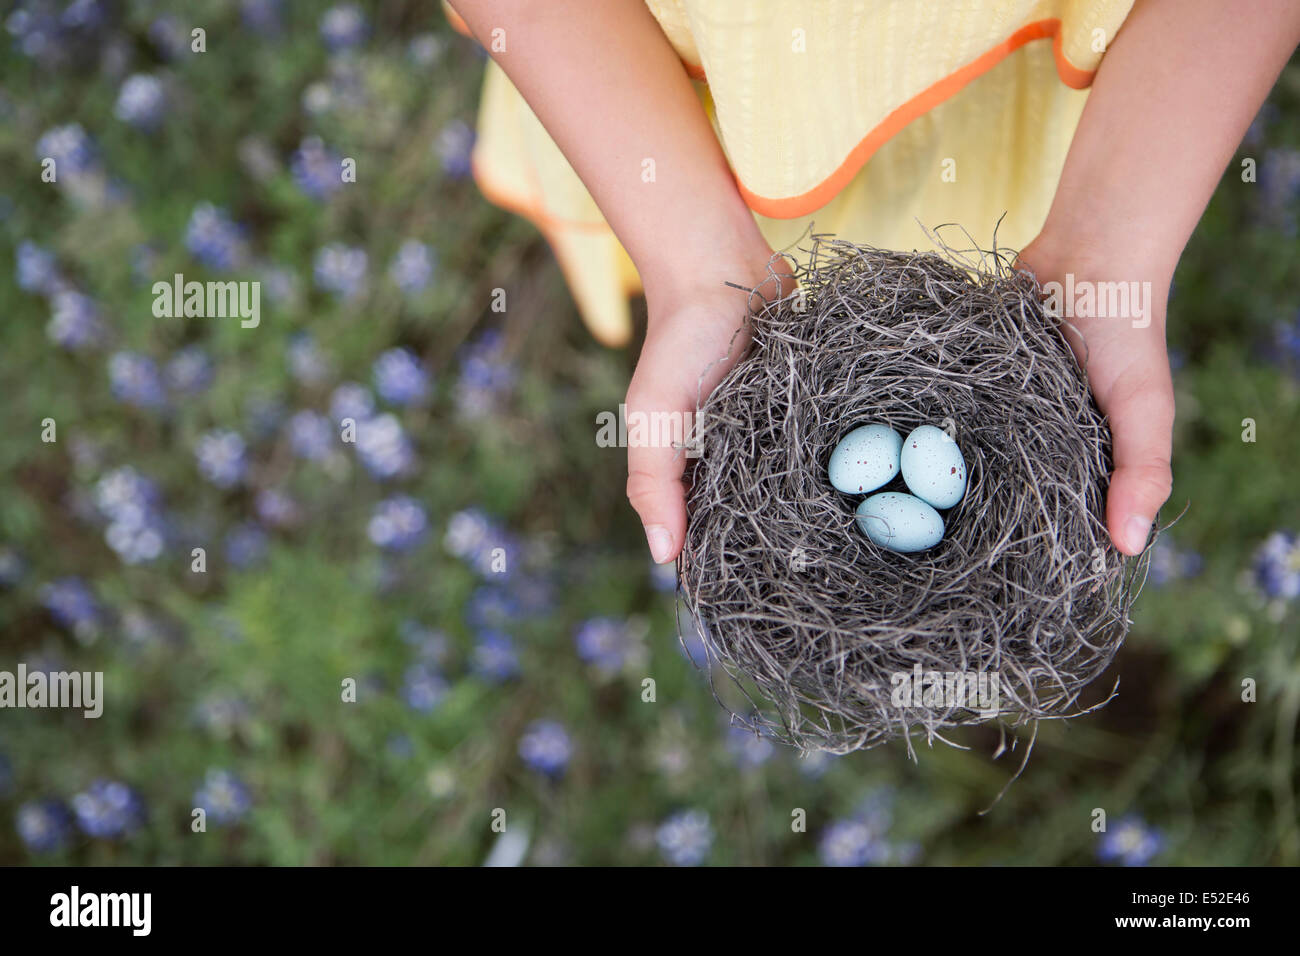 A young girl holding out a woven bird nest with three small eggs. - Stock Image